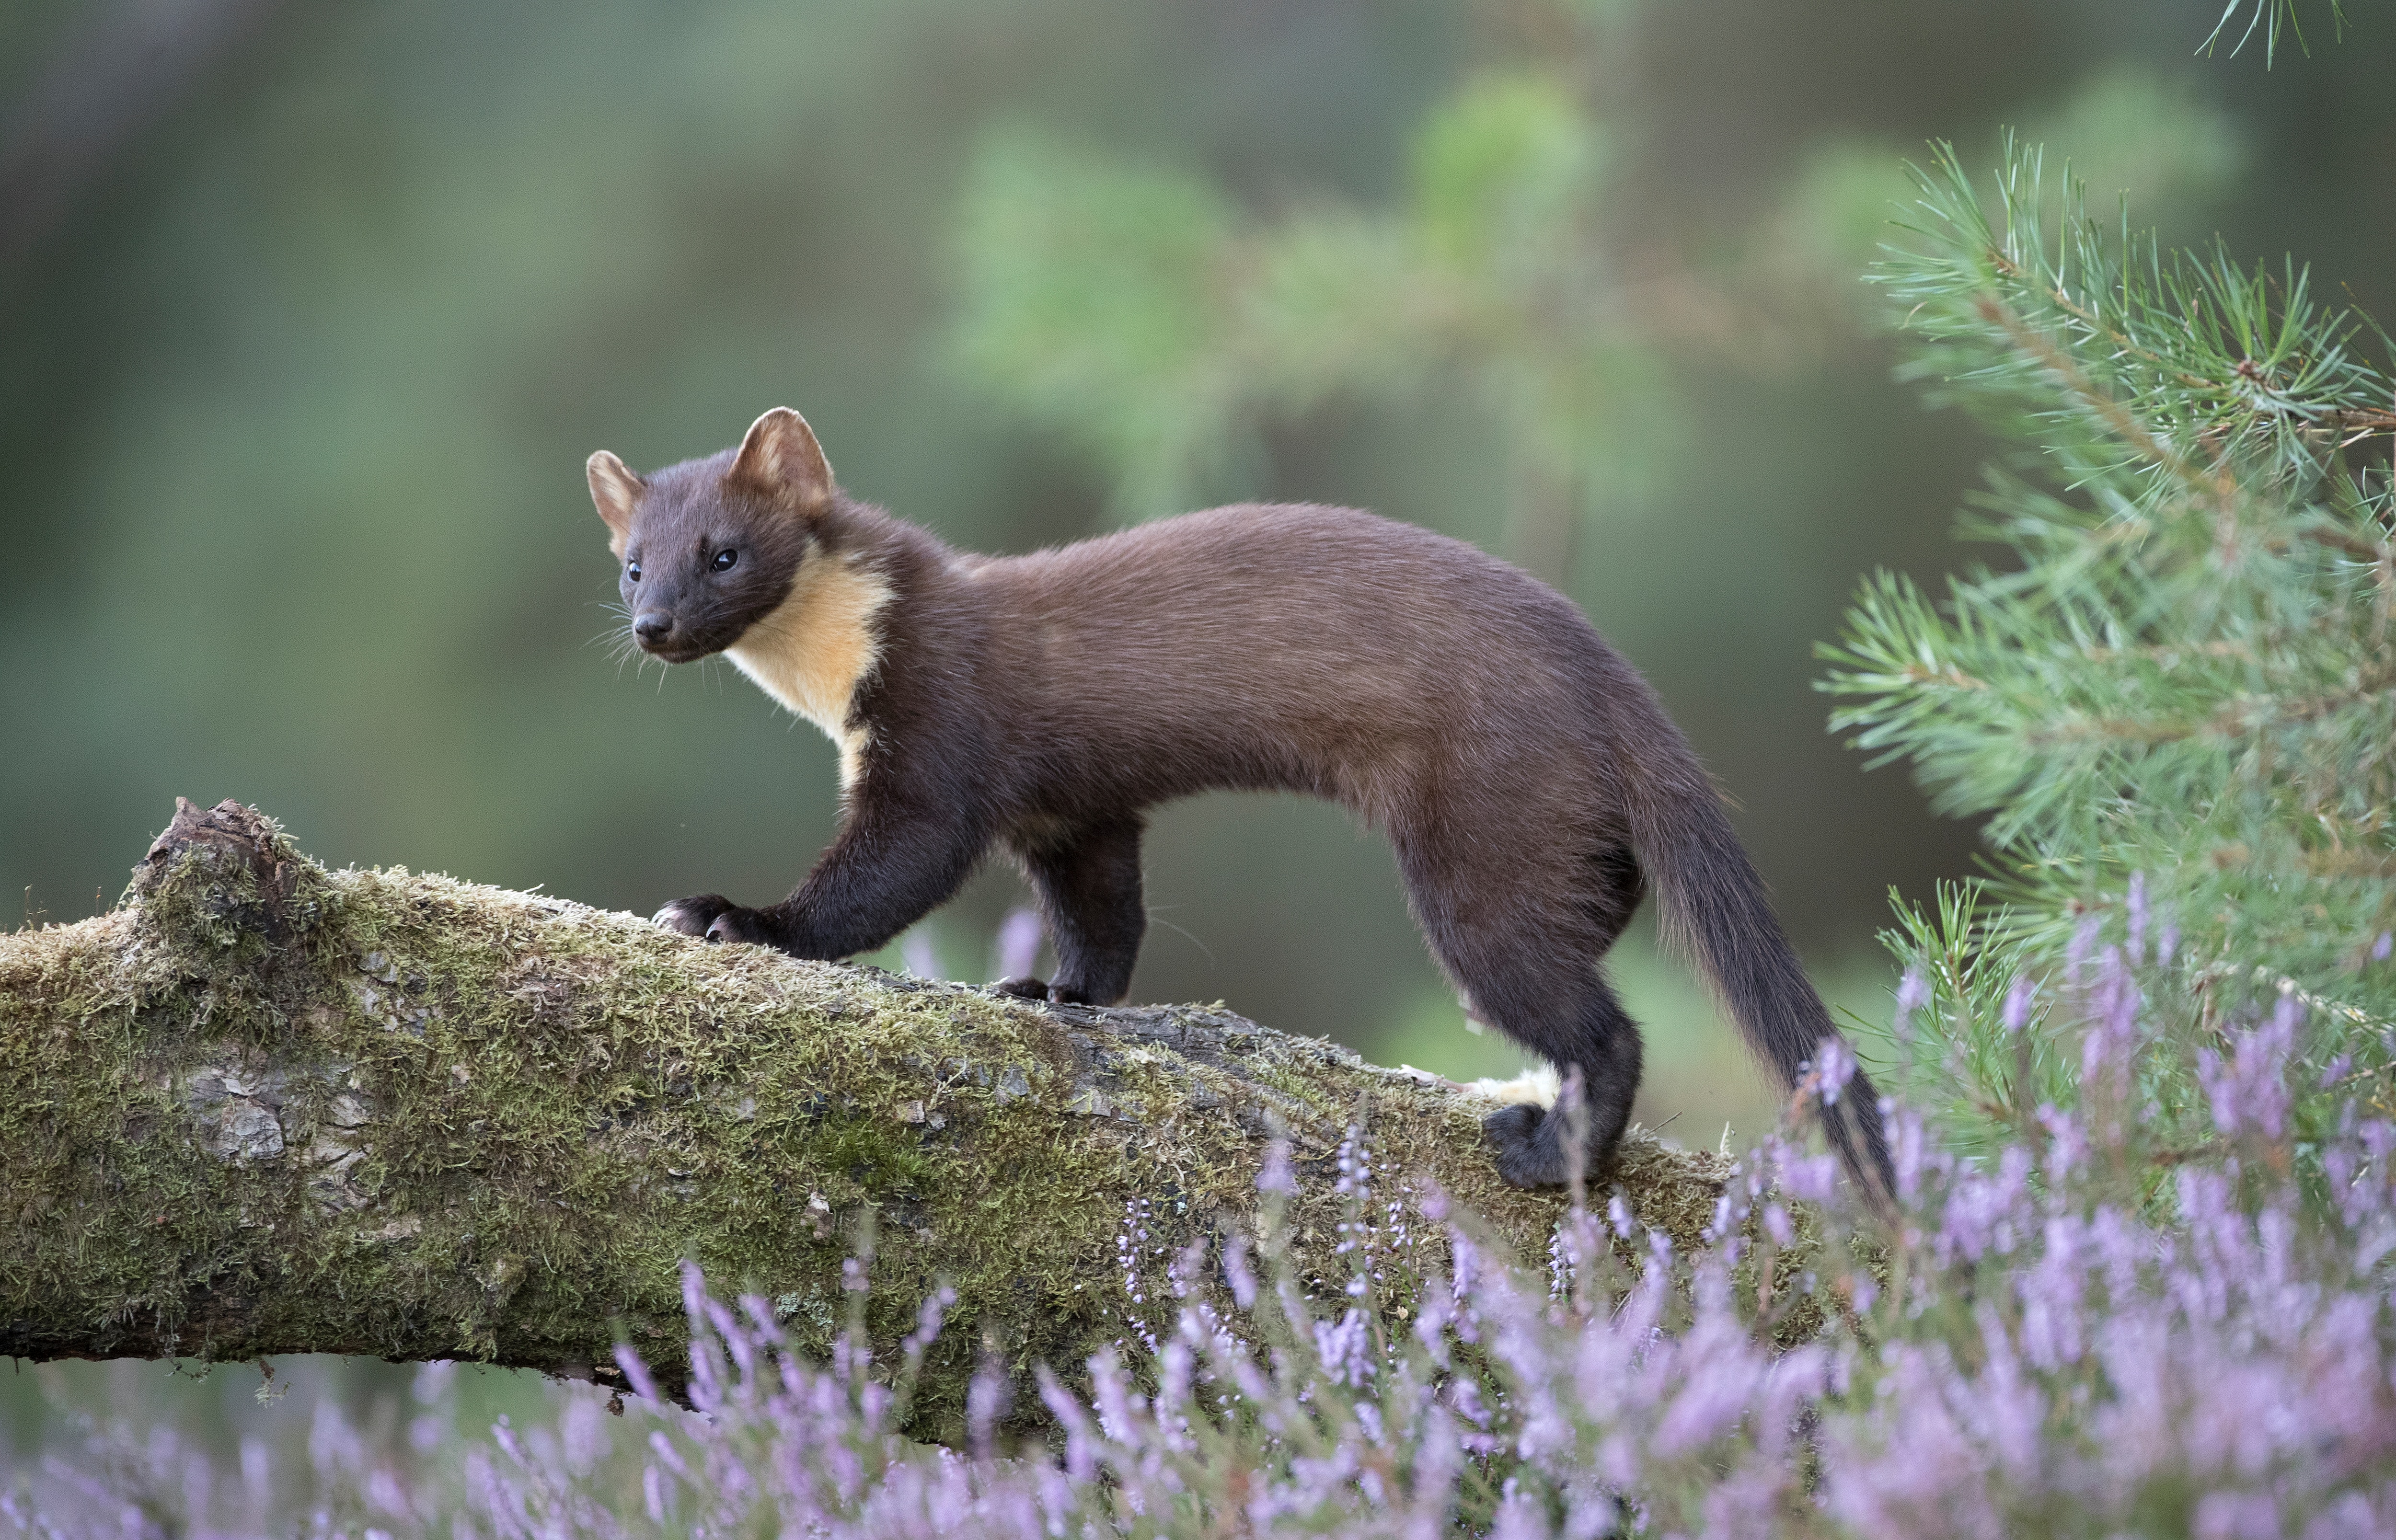 Pine marten standing on a tree